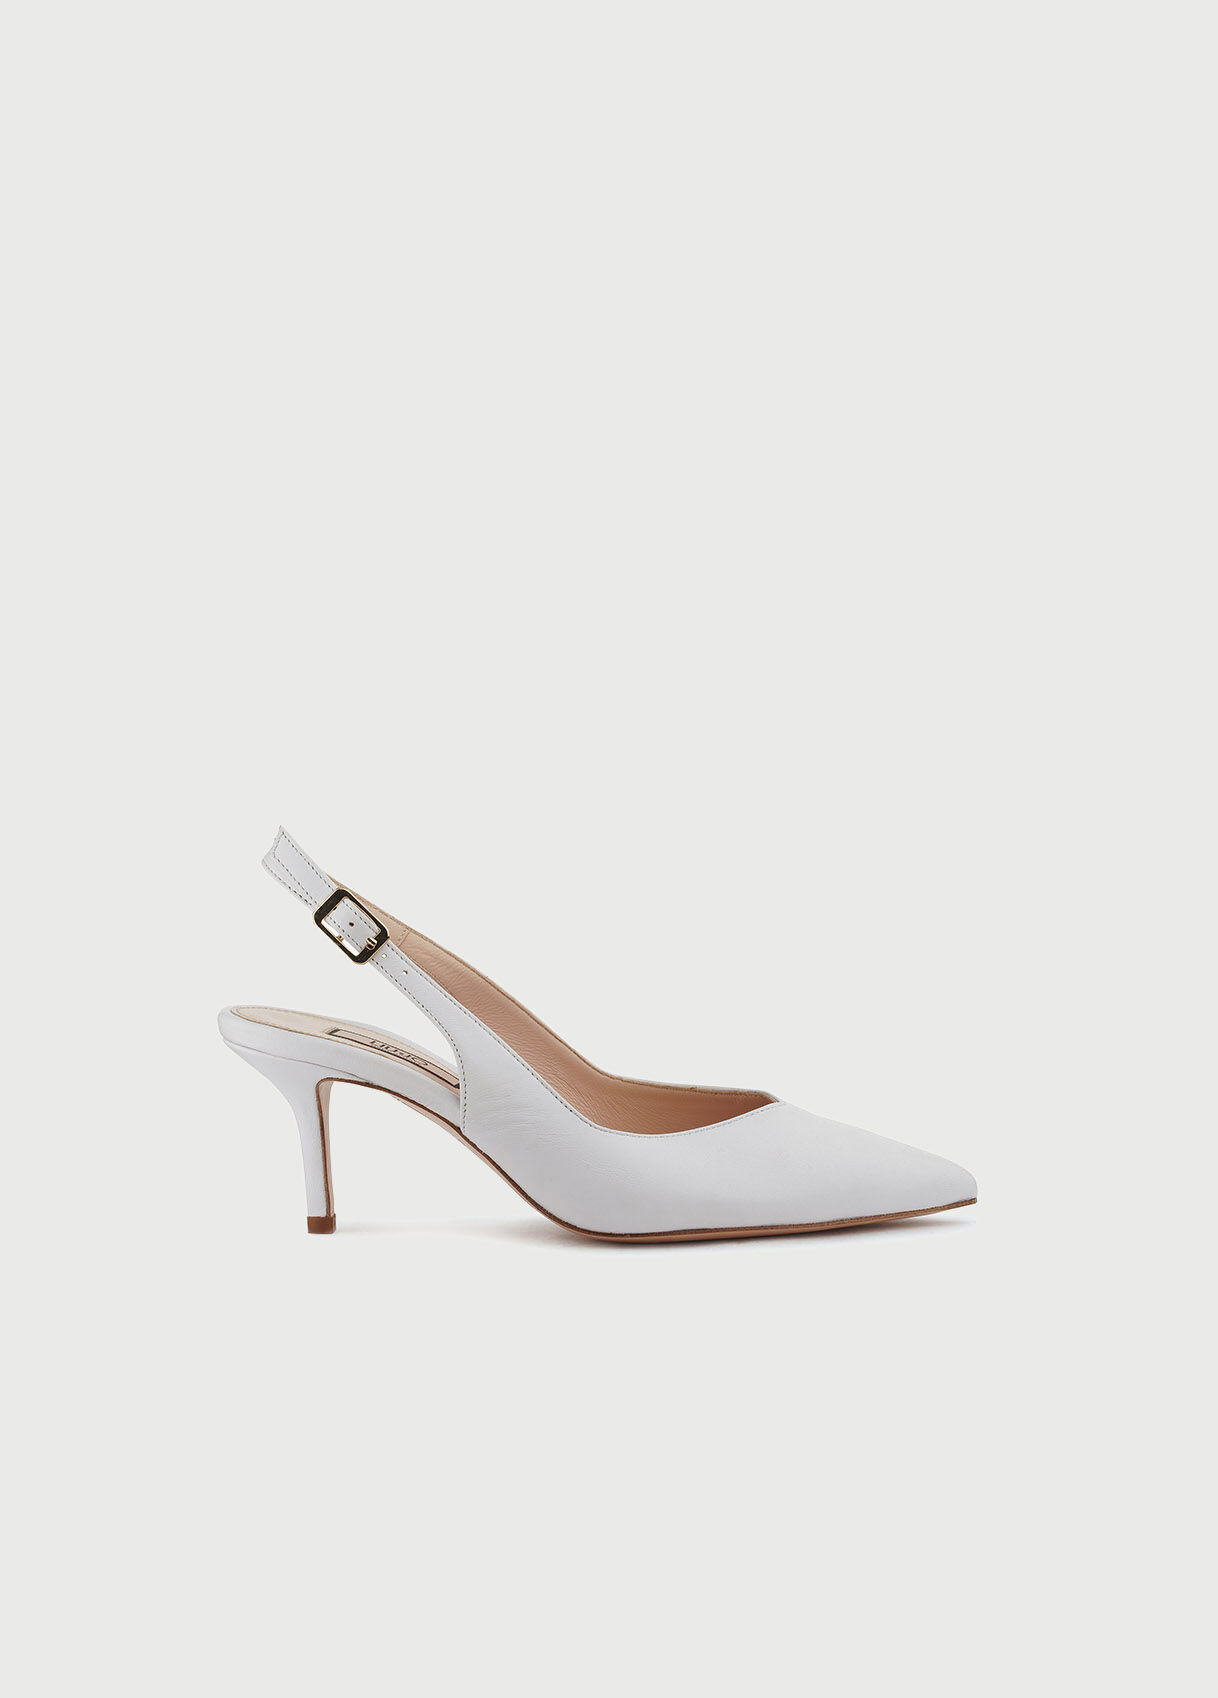 Leather court shoe with low heel.